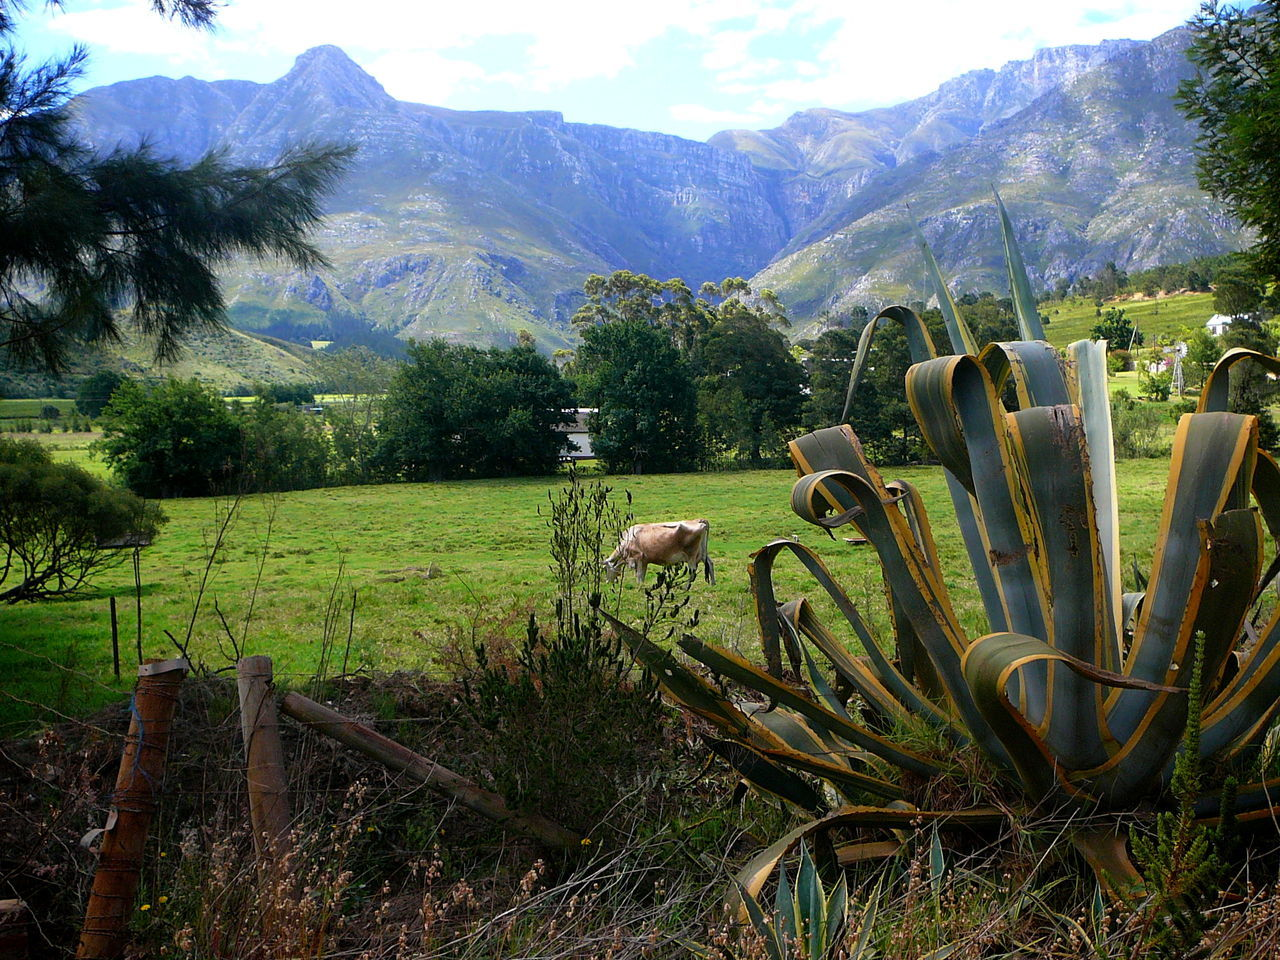 Blissfully Grazing Beauty In Nature Blue Mountains Cactus Close-up Cows In A Field Day Field Grazing Cattle Green Color Growth Landscape Mountain Nature No People Outdoors Plant Scenics Sky Swellendam Tranquil Scene Tranquility Tree Western Cape